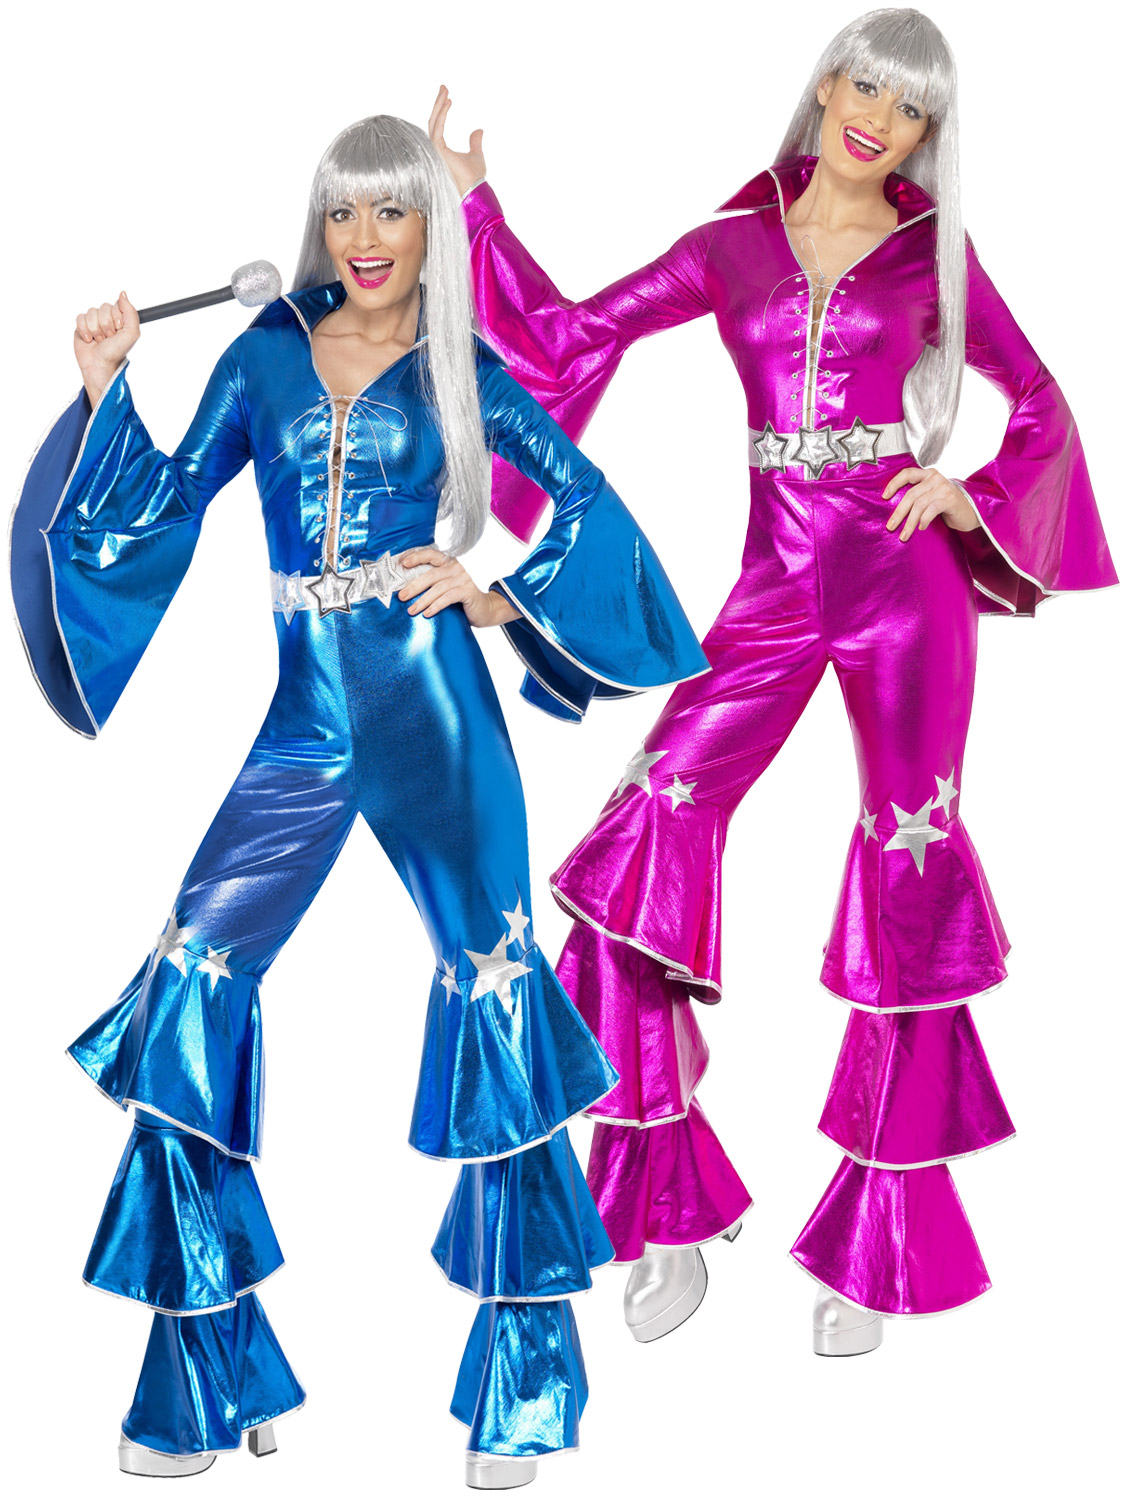 Ladies 1970s dancing dream costume adult fancy dress waterloo 70s transform yourself into the ultimate dancing queen with this ladies 1970s dancing dream costume solutioingenieria Images